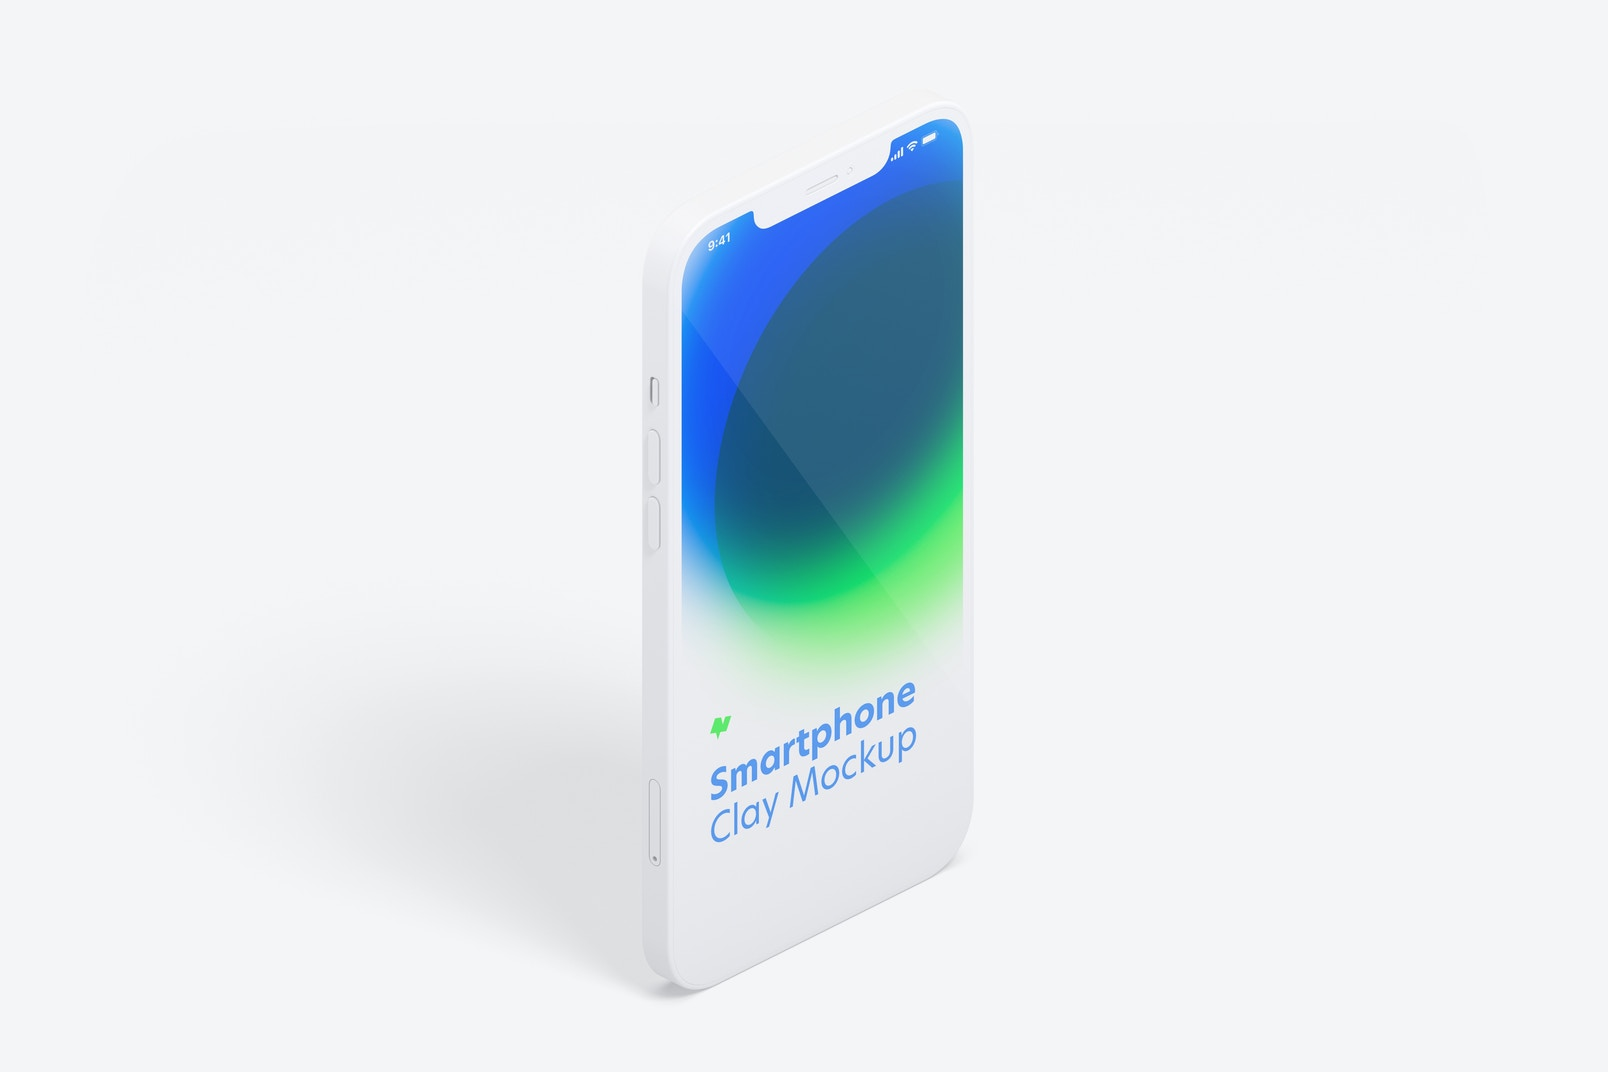 Isometric Clay iPhone 12 Mockup, Portrait Right View